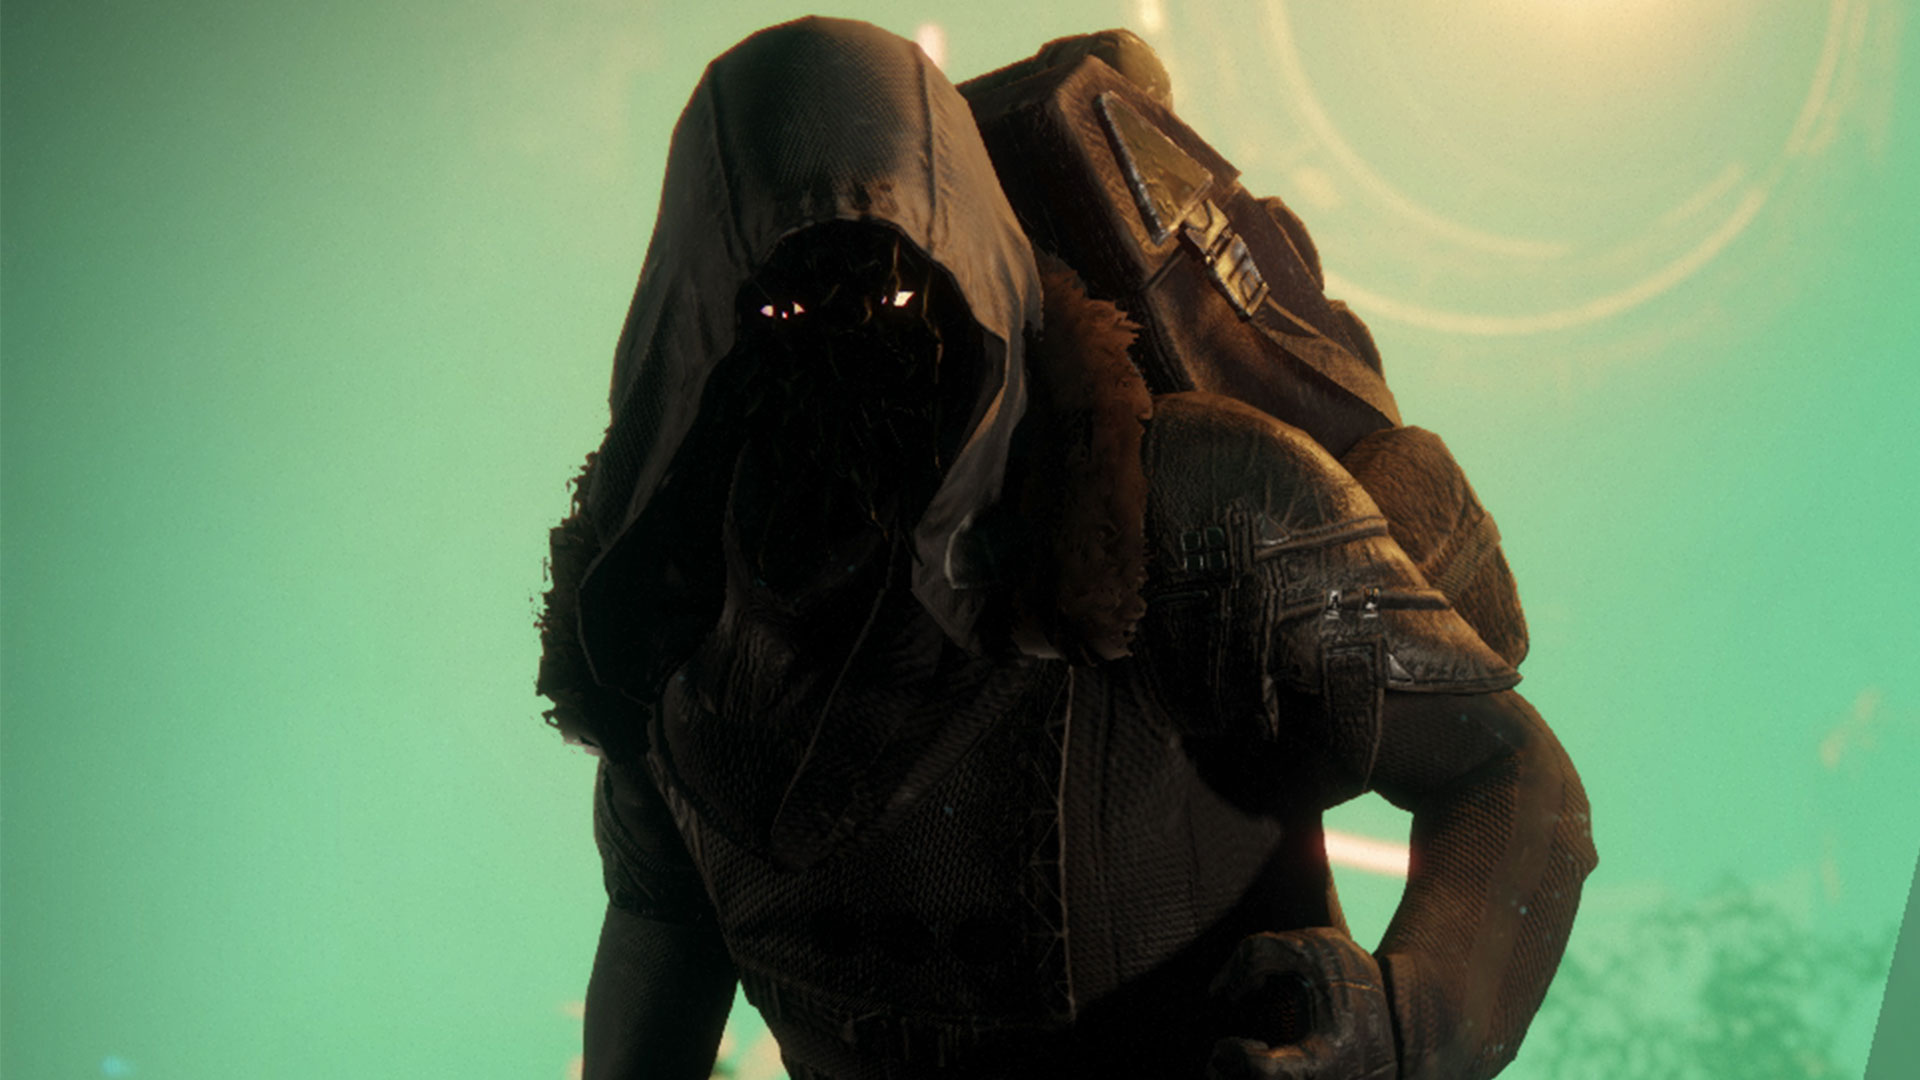 Destiny 2 Xur location and items, Aug. 30-Sept. 2